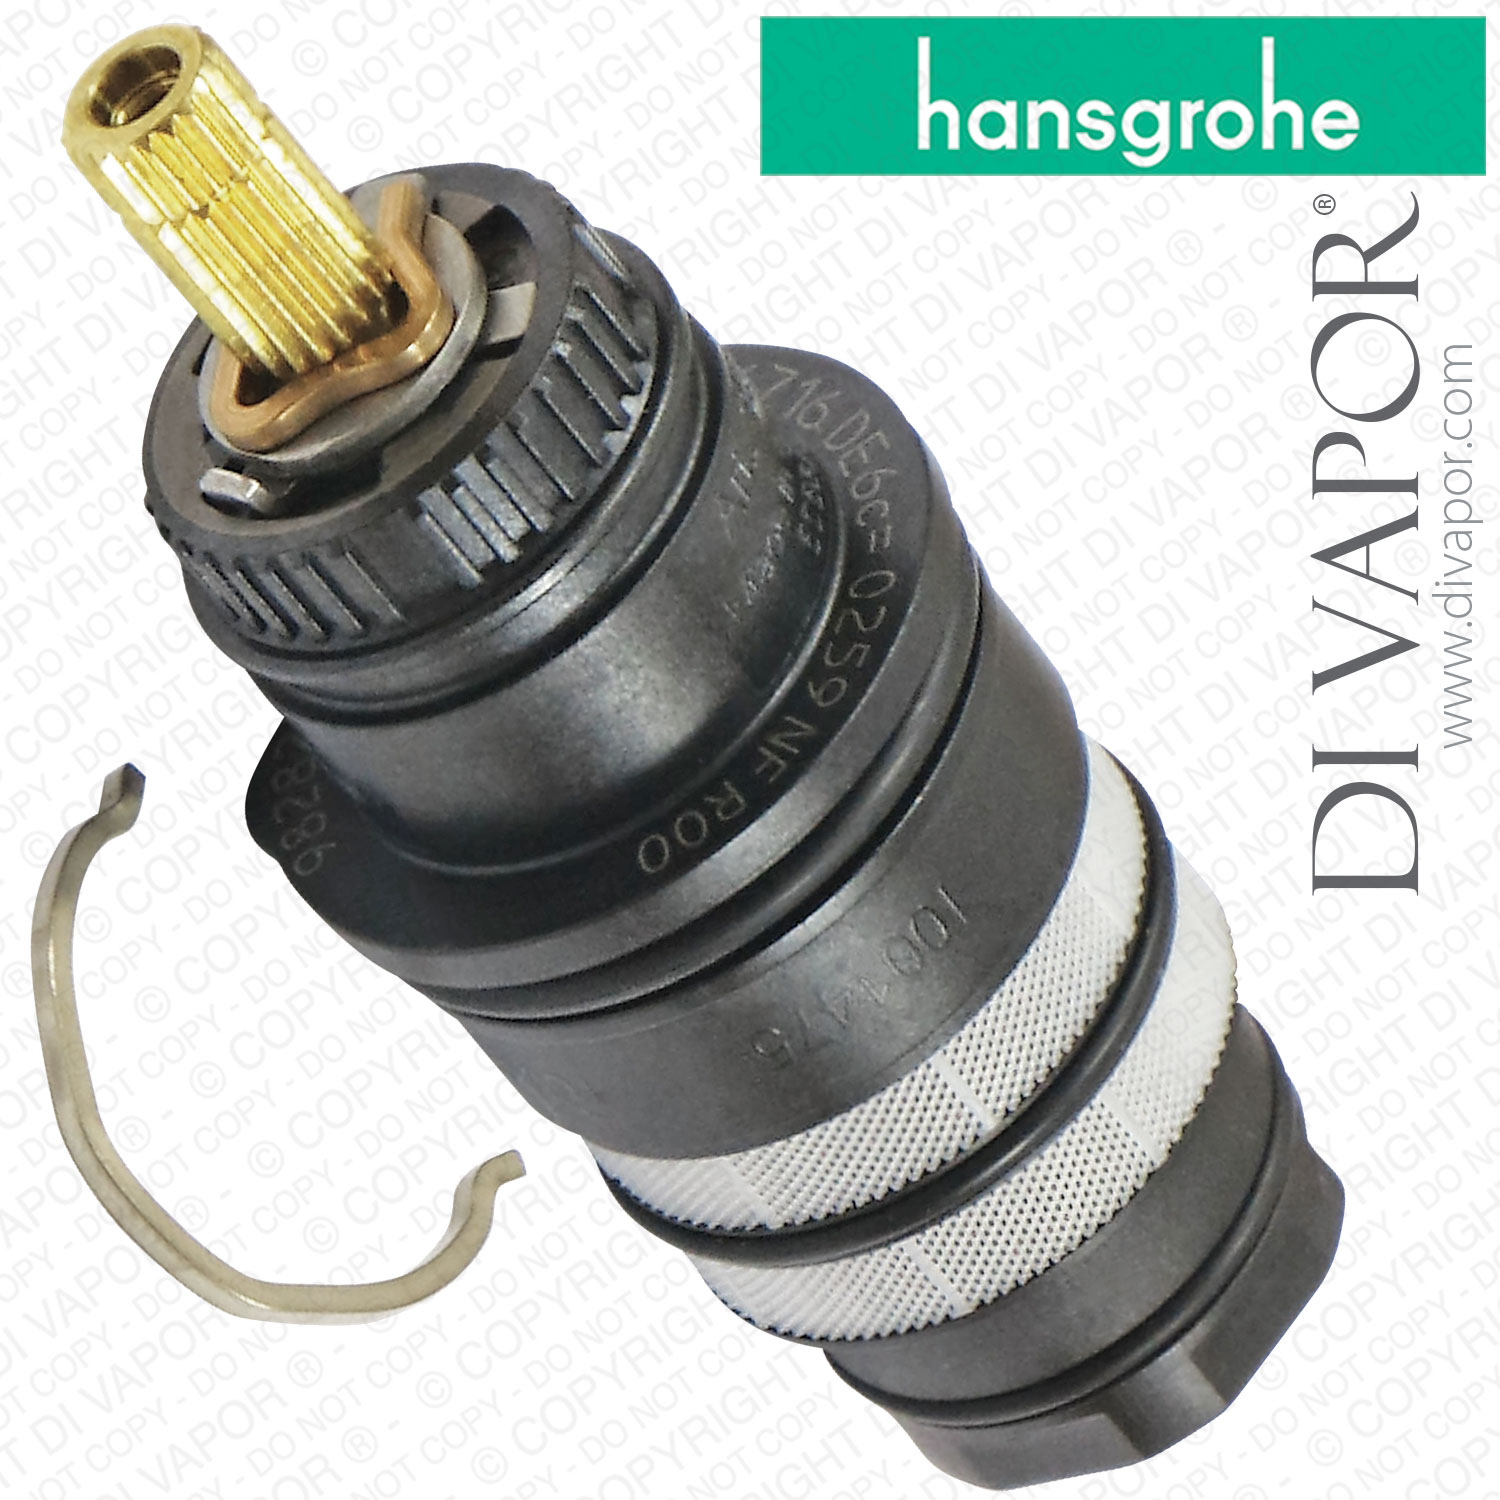 Hansgrohe 98282000 Thermostatic Cartridge for Ecostat, Axor ...